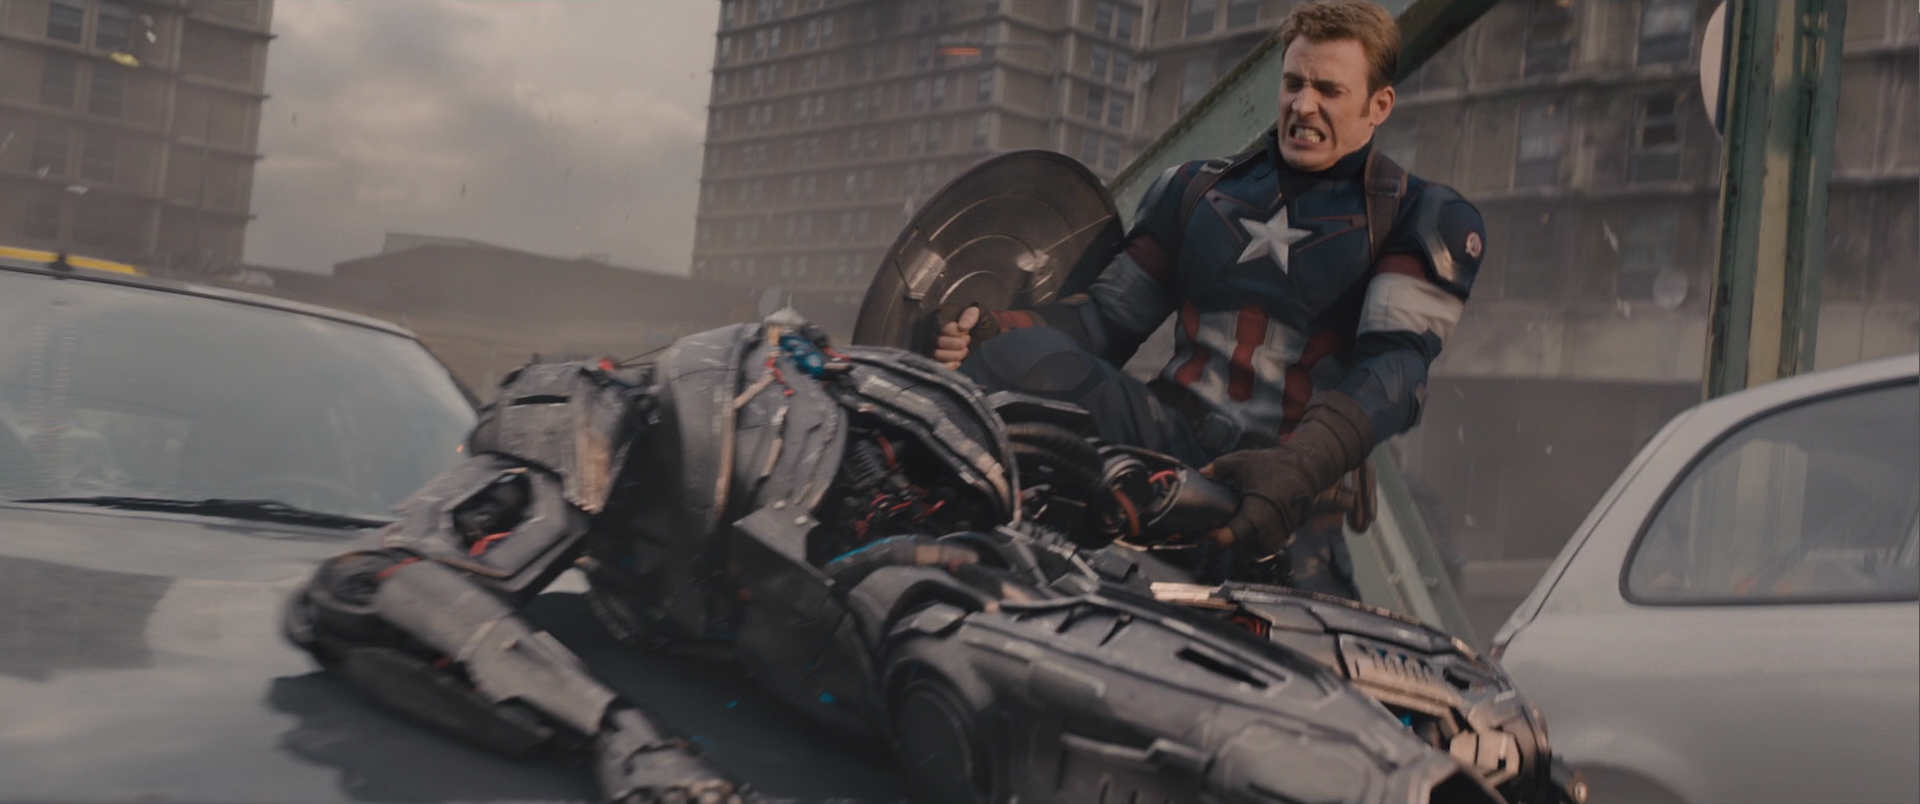 In this shot I had to remove a very big person wearing a mocap suit. I had to rebuild the background cars using projections and the foreground car using parts of a CG car. I also had to rebuild many parts of Captain America using patches and projections, and CG body parts. I added different layers of blowing dust and debris and added the burning marks on the buildings in the background. I also did sky replacement and added sparks and flying pieces of the Sub-Ultron's arm as it ge's ripped apart.